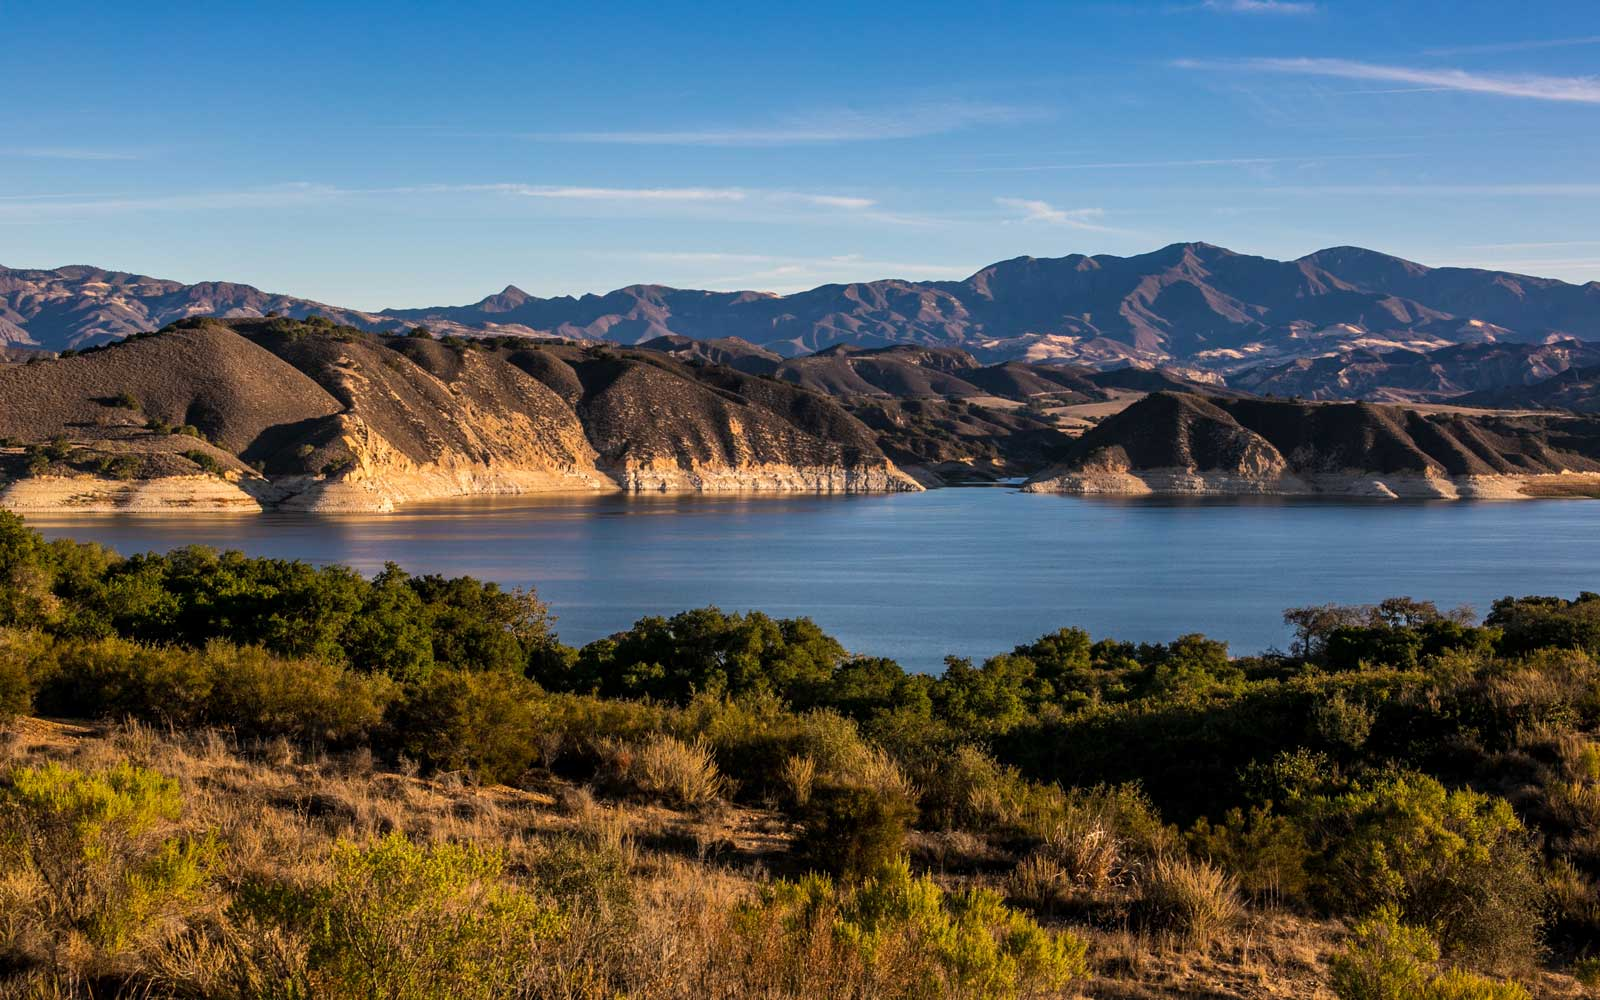 Row Your Boat in the Santa Ynez Valley